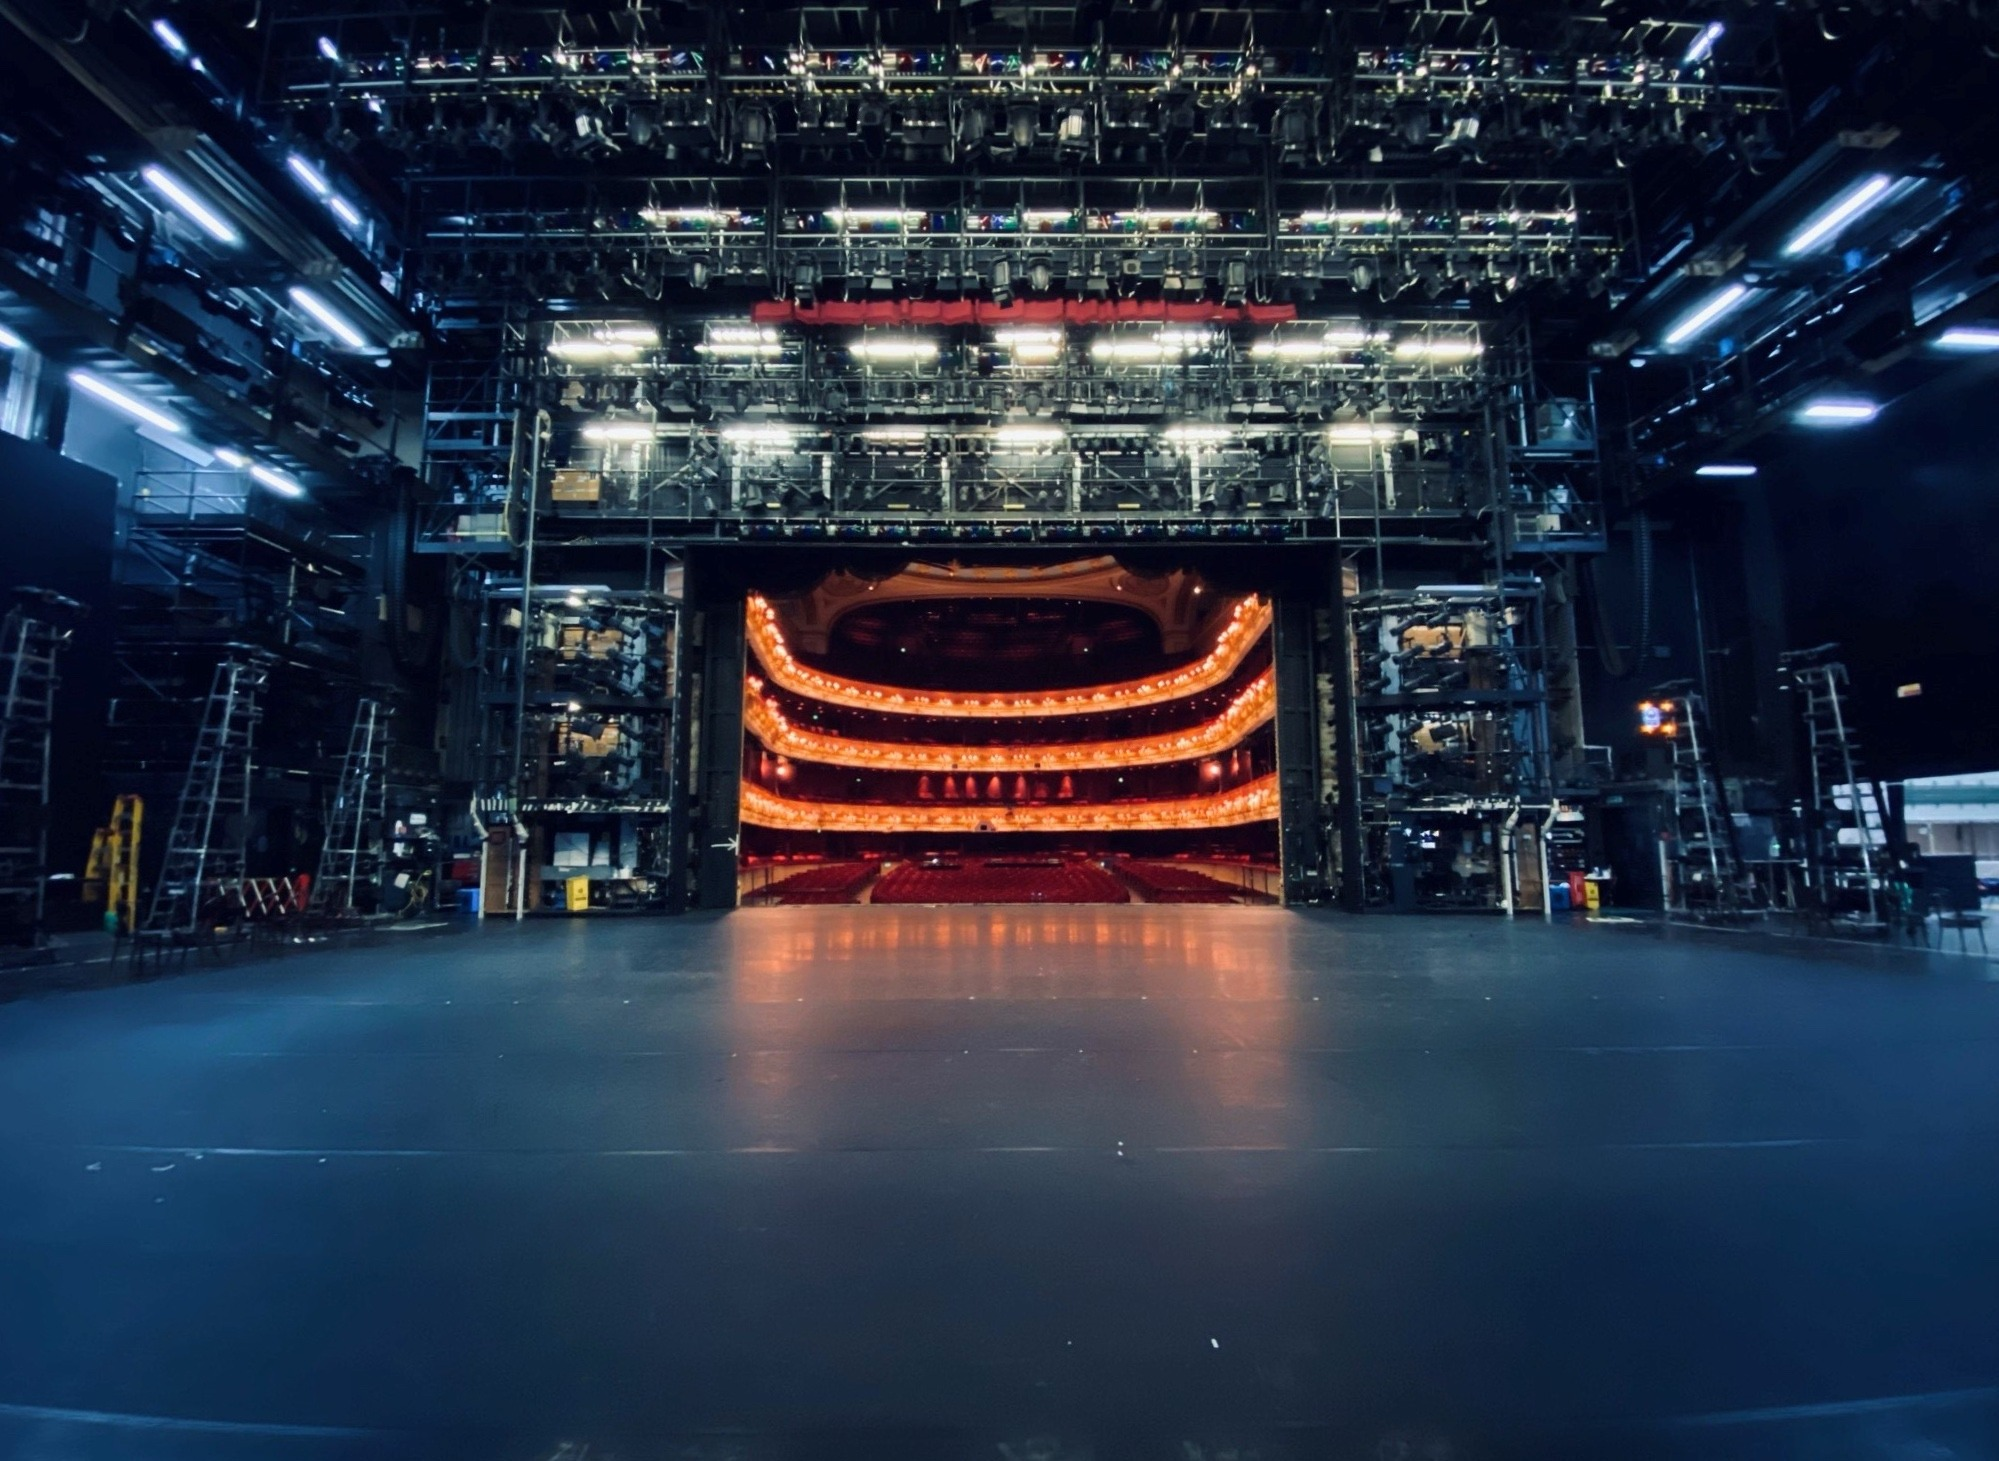 Photograph of the Royal Opera House stage